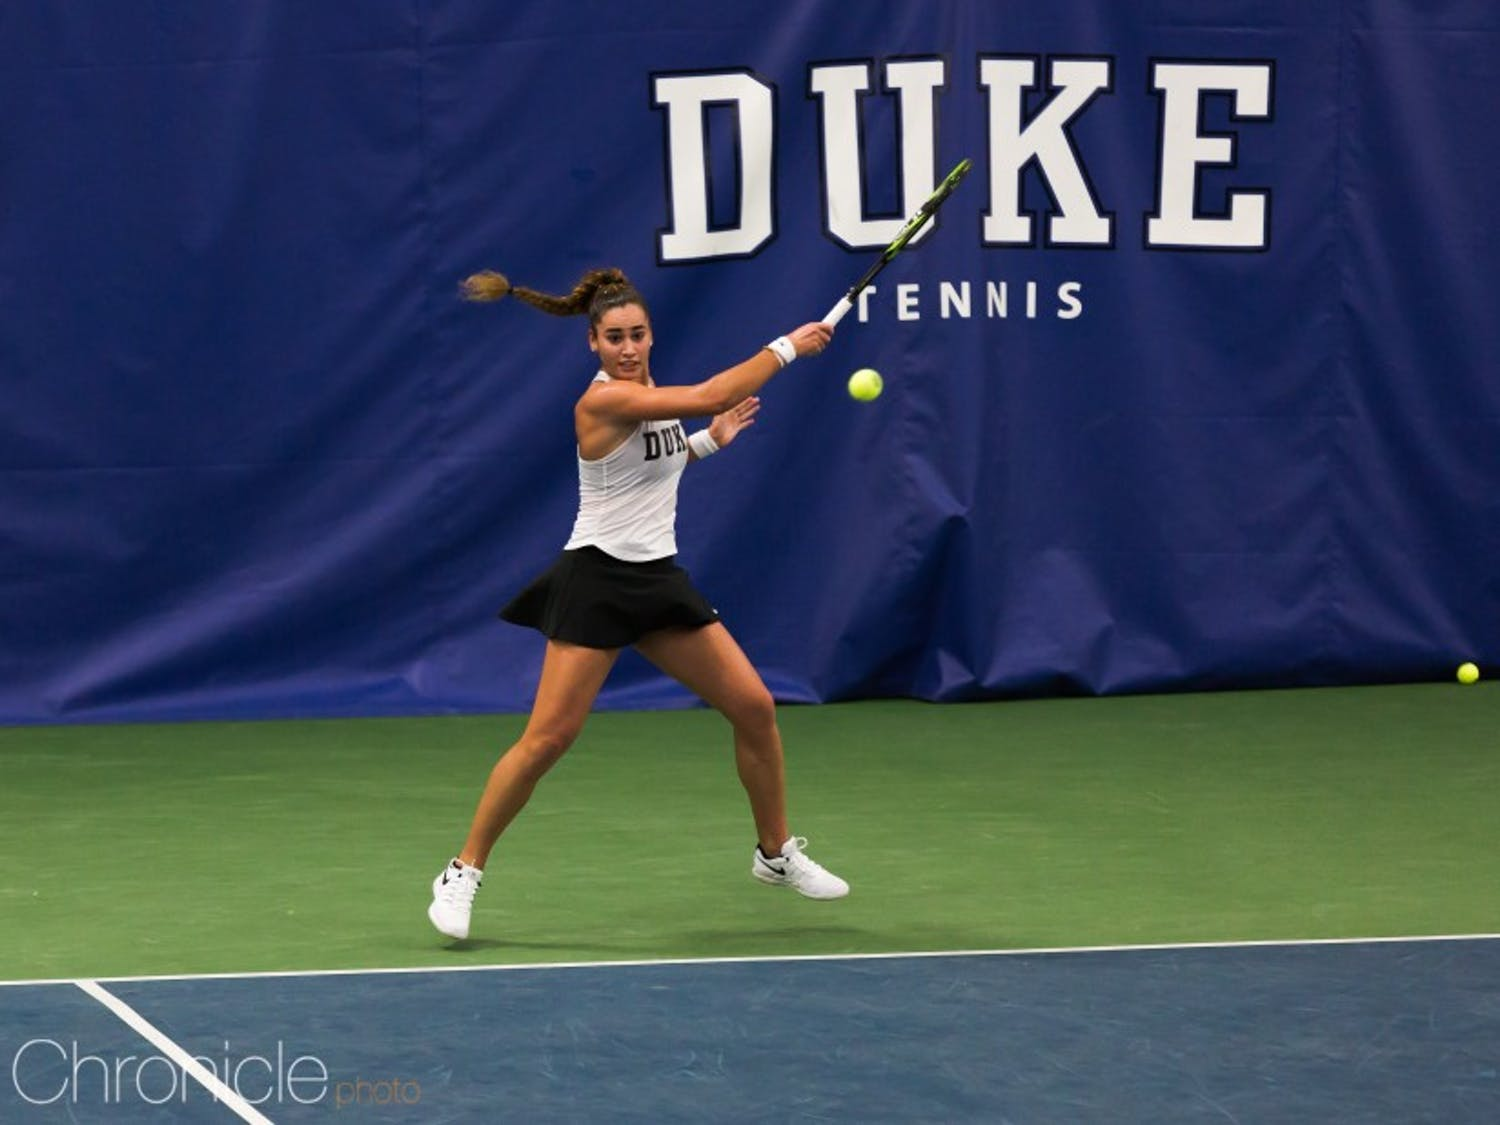 Maria Mateas cruised to a straight-set victory against a top-10 opponent Wednesday.